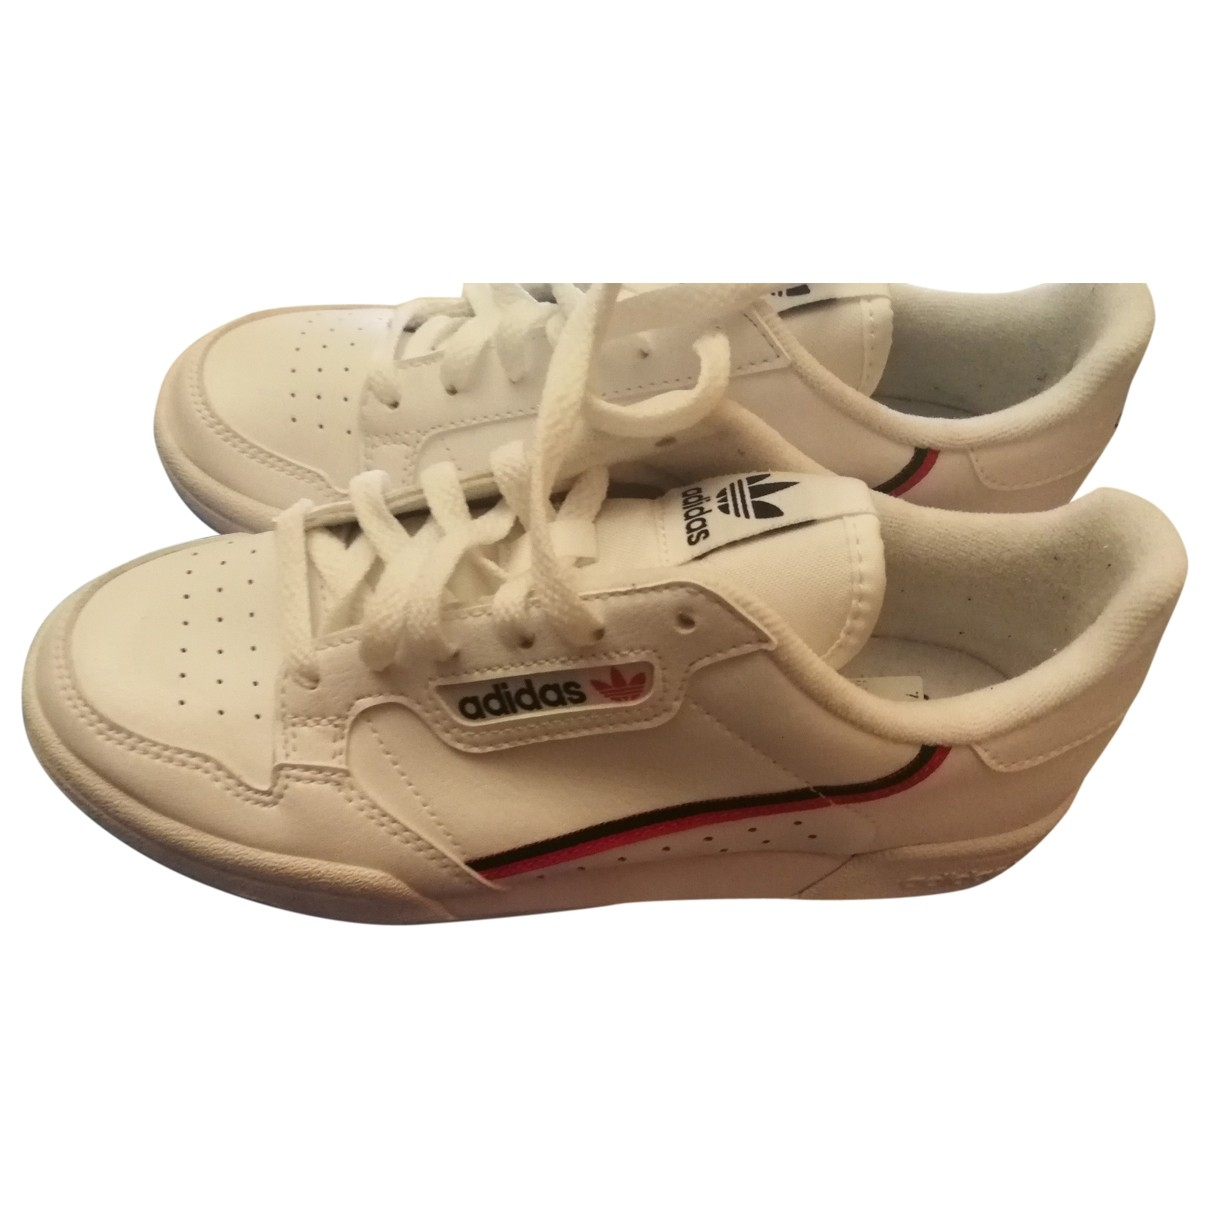 Adidas Continental 80 White Leather Trainers for Women 35.5 EU